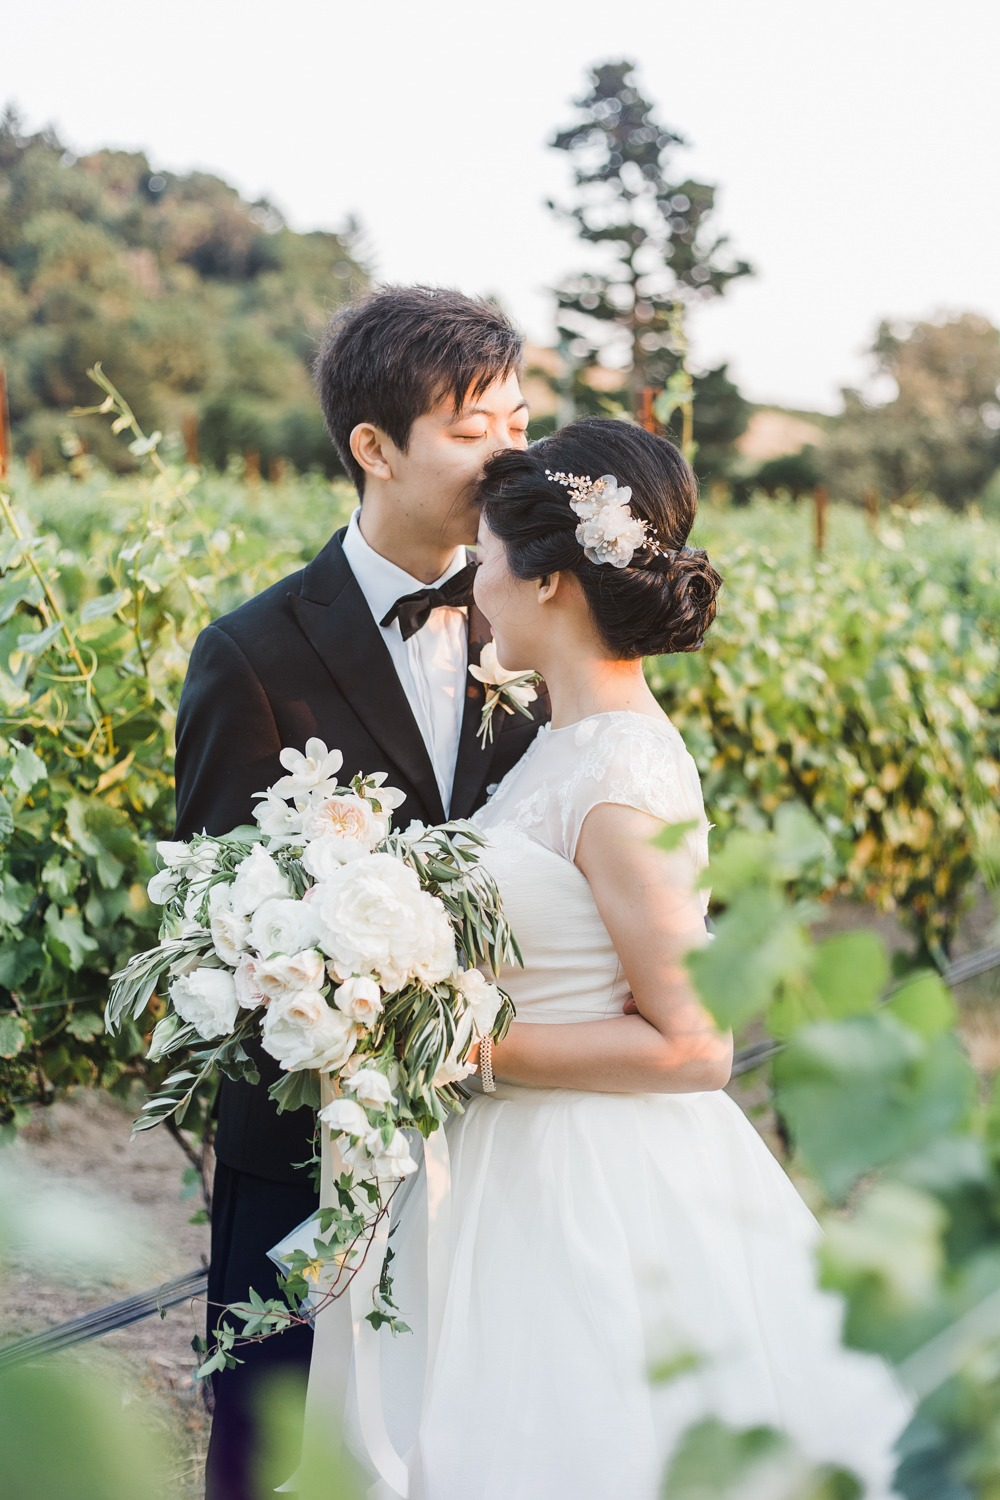 sweet wedding couple in a vineyard